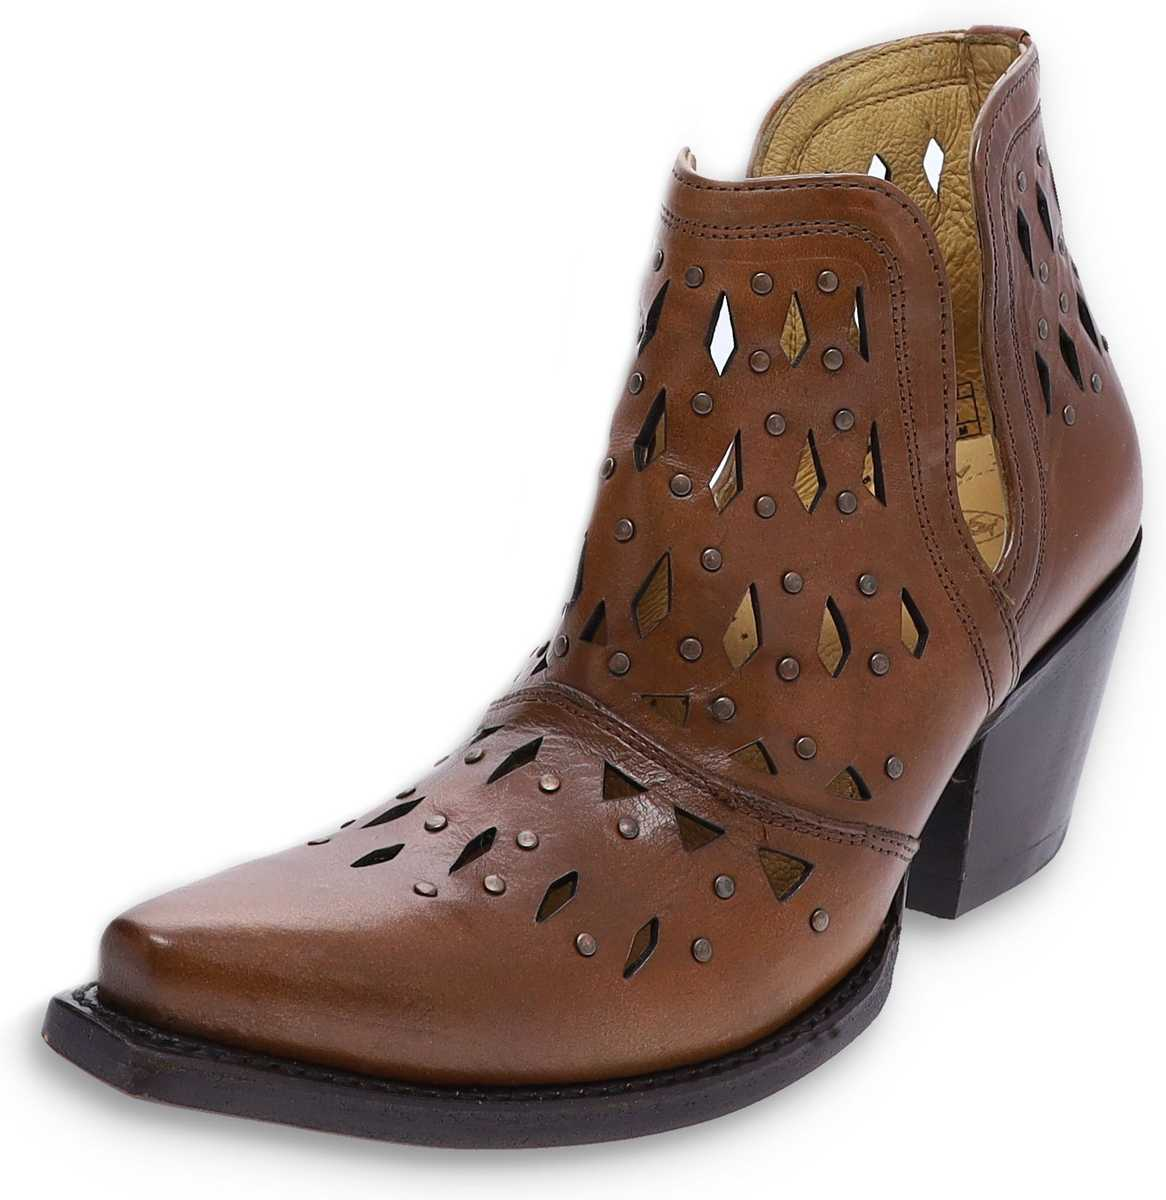 Ariat 31500 DIXON STUDDED Amber women's leather shoes - brown